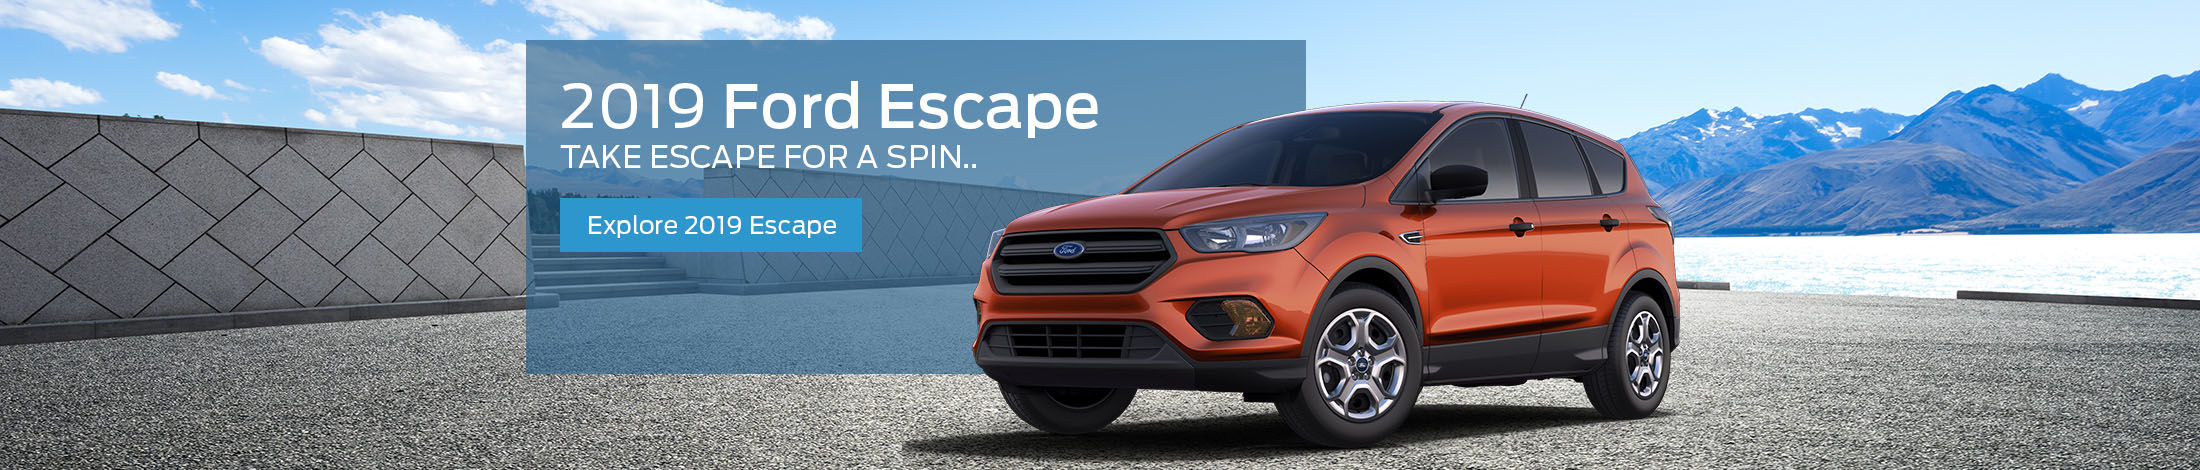 best sneakers 8b09f 998ca 2019 Ford Escape ...